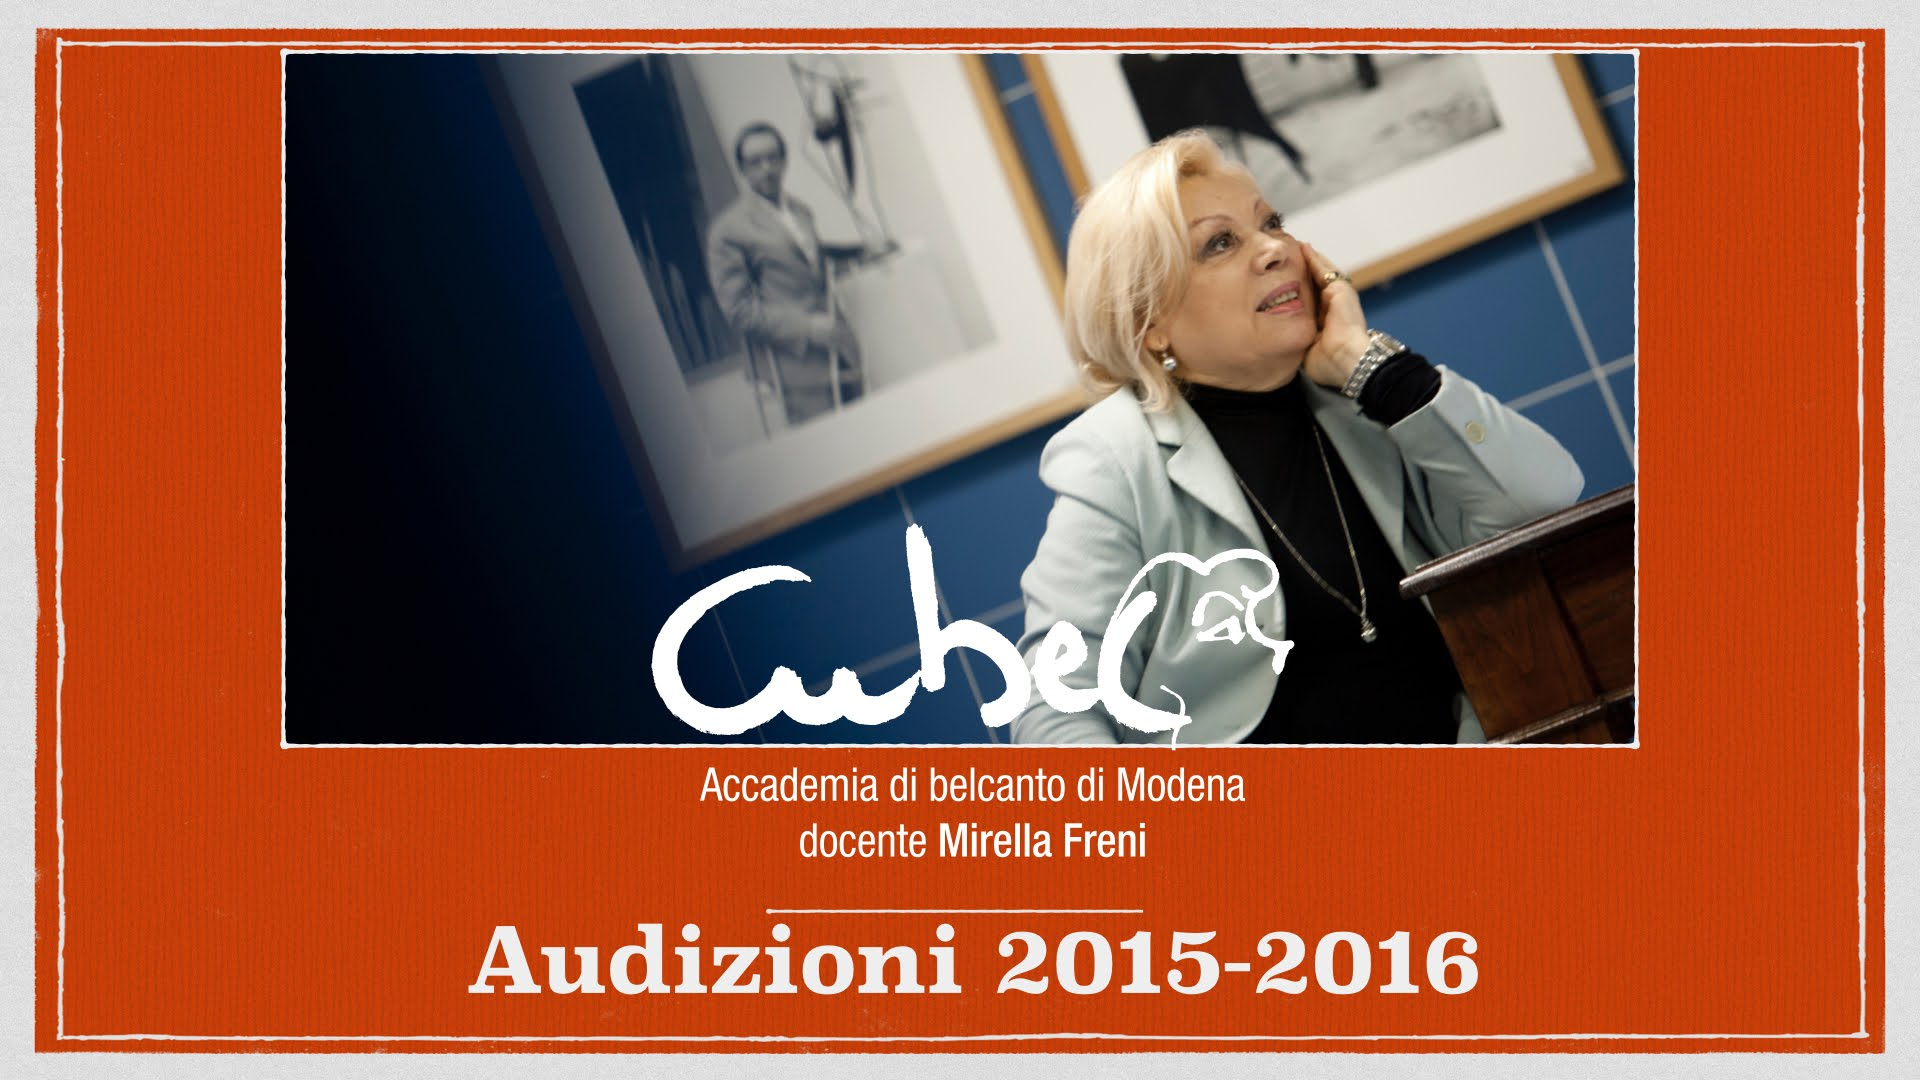 mirella freni leaves cubec